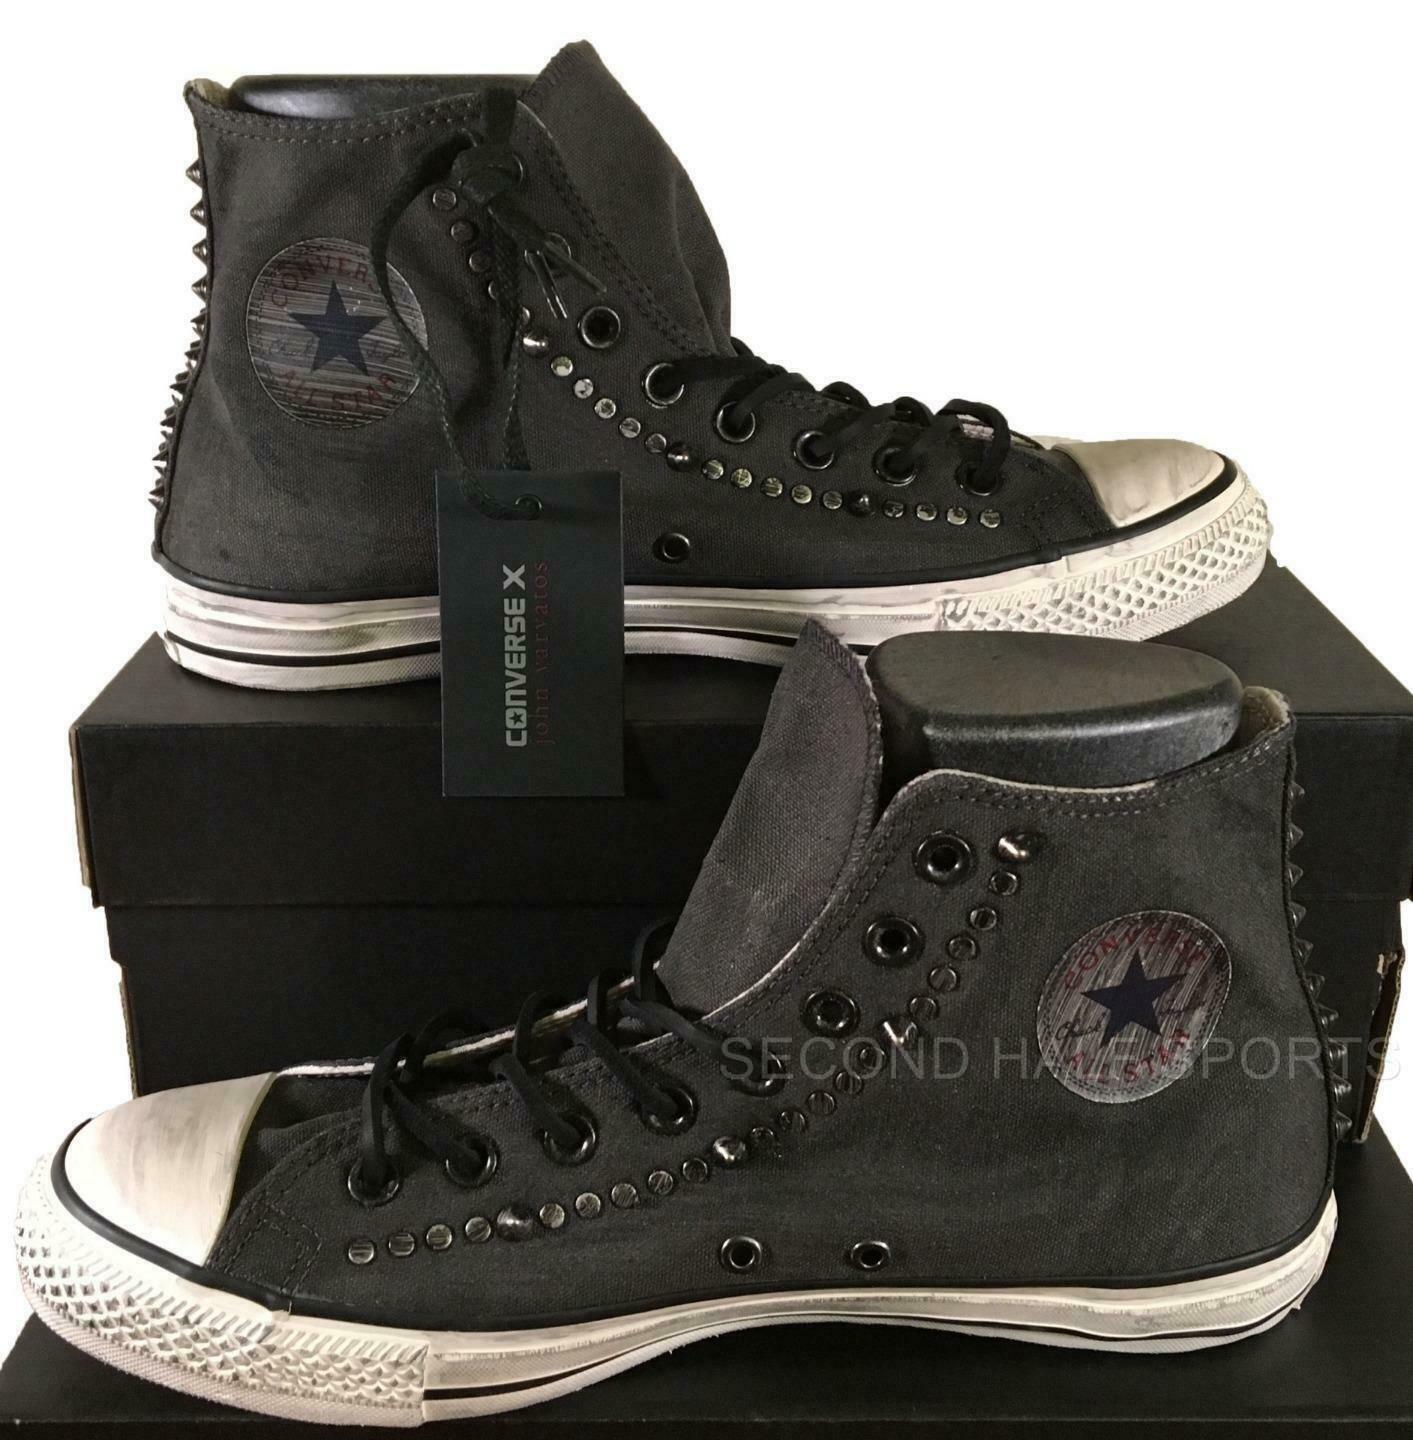 8fe41a28dd37 Converse John Varvatos Painted Hardware Studded Canvas Sneakers GREY  145387C -  125.00